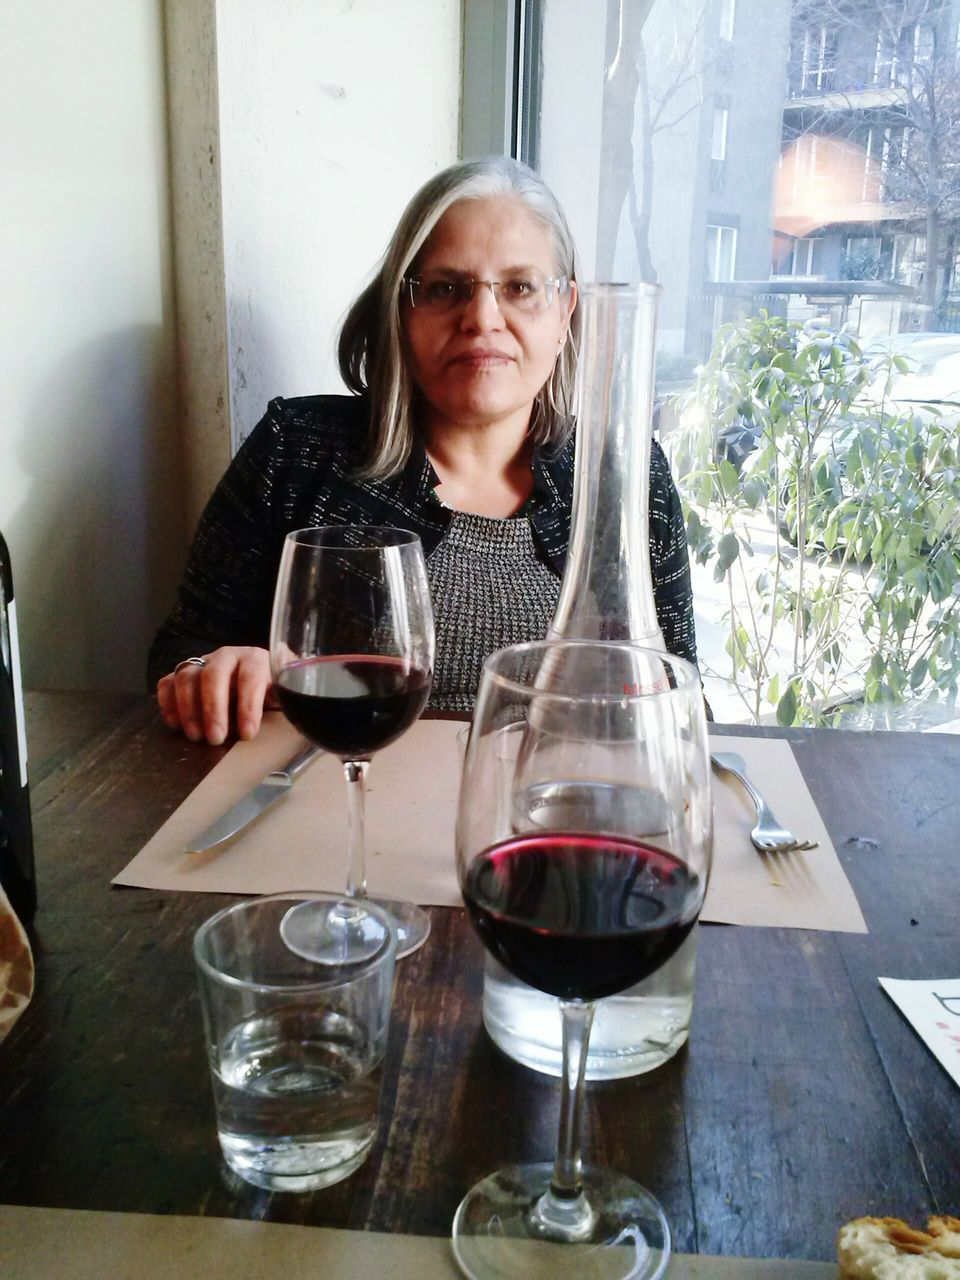 wineglass, wine, table, red wine, one person, real people, alcohol, eyeglasses, looking at camera, drink, indoors, drinking glass, portrait, holding, leisure activity, lifestyles, happiness, women, day, adult, people